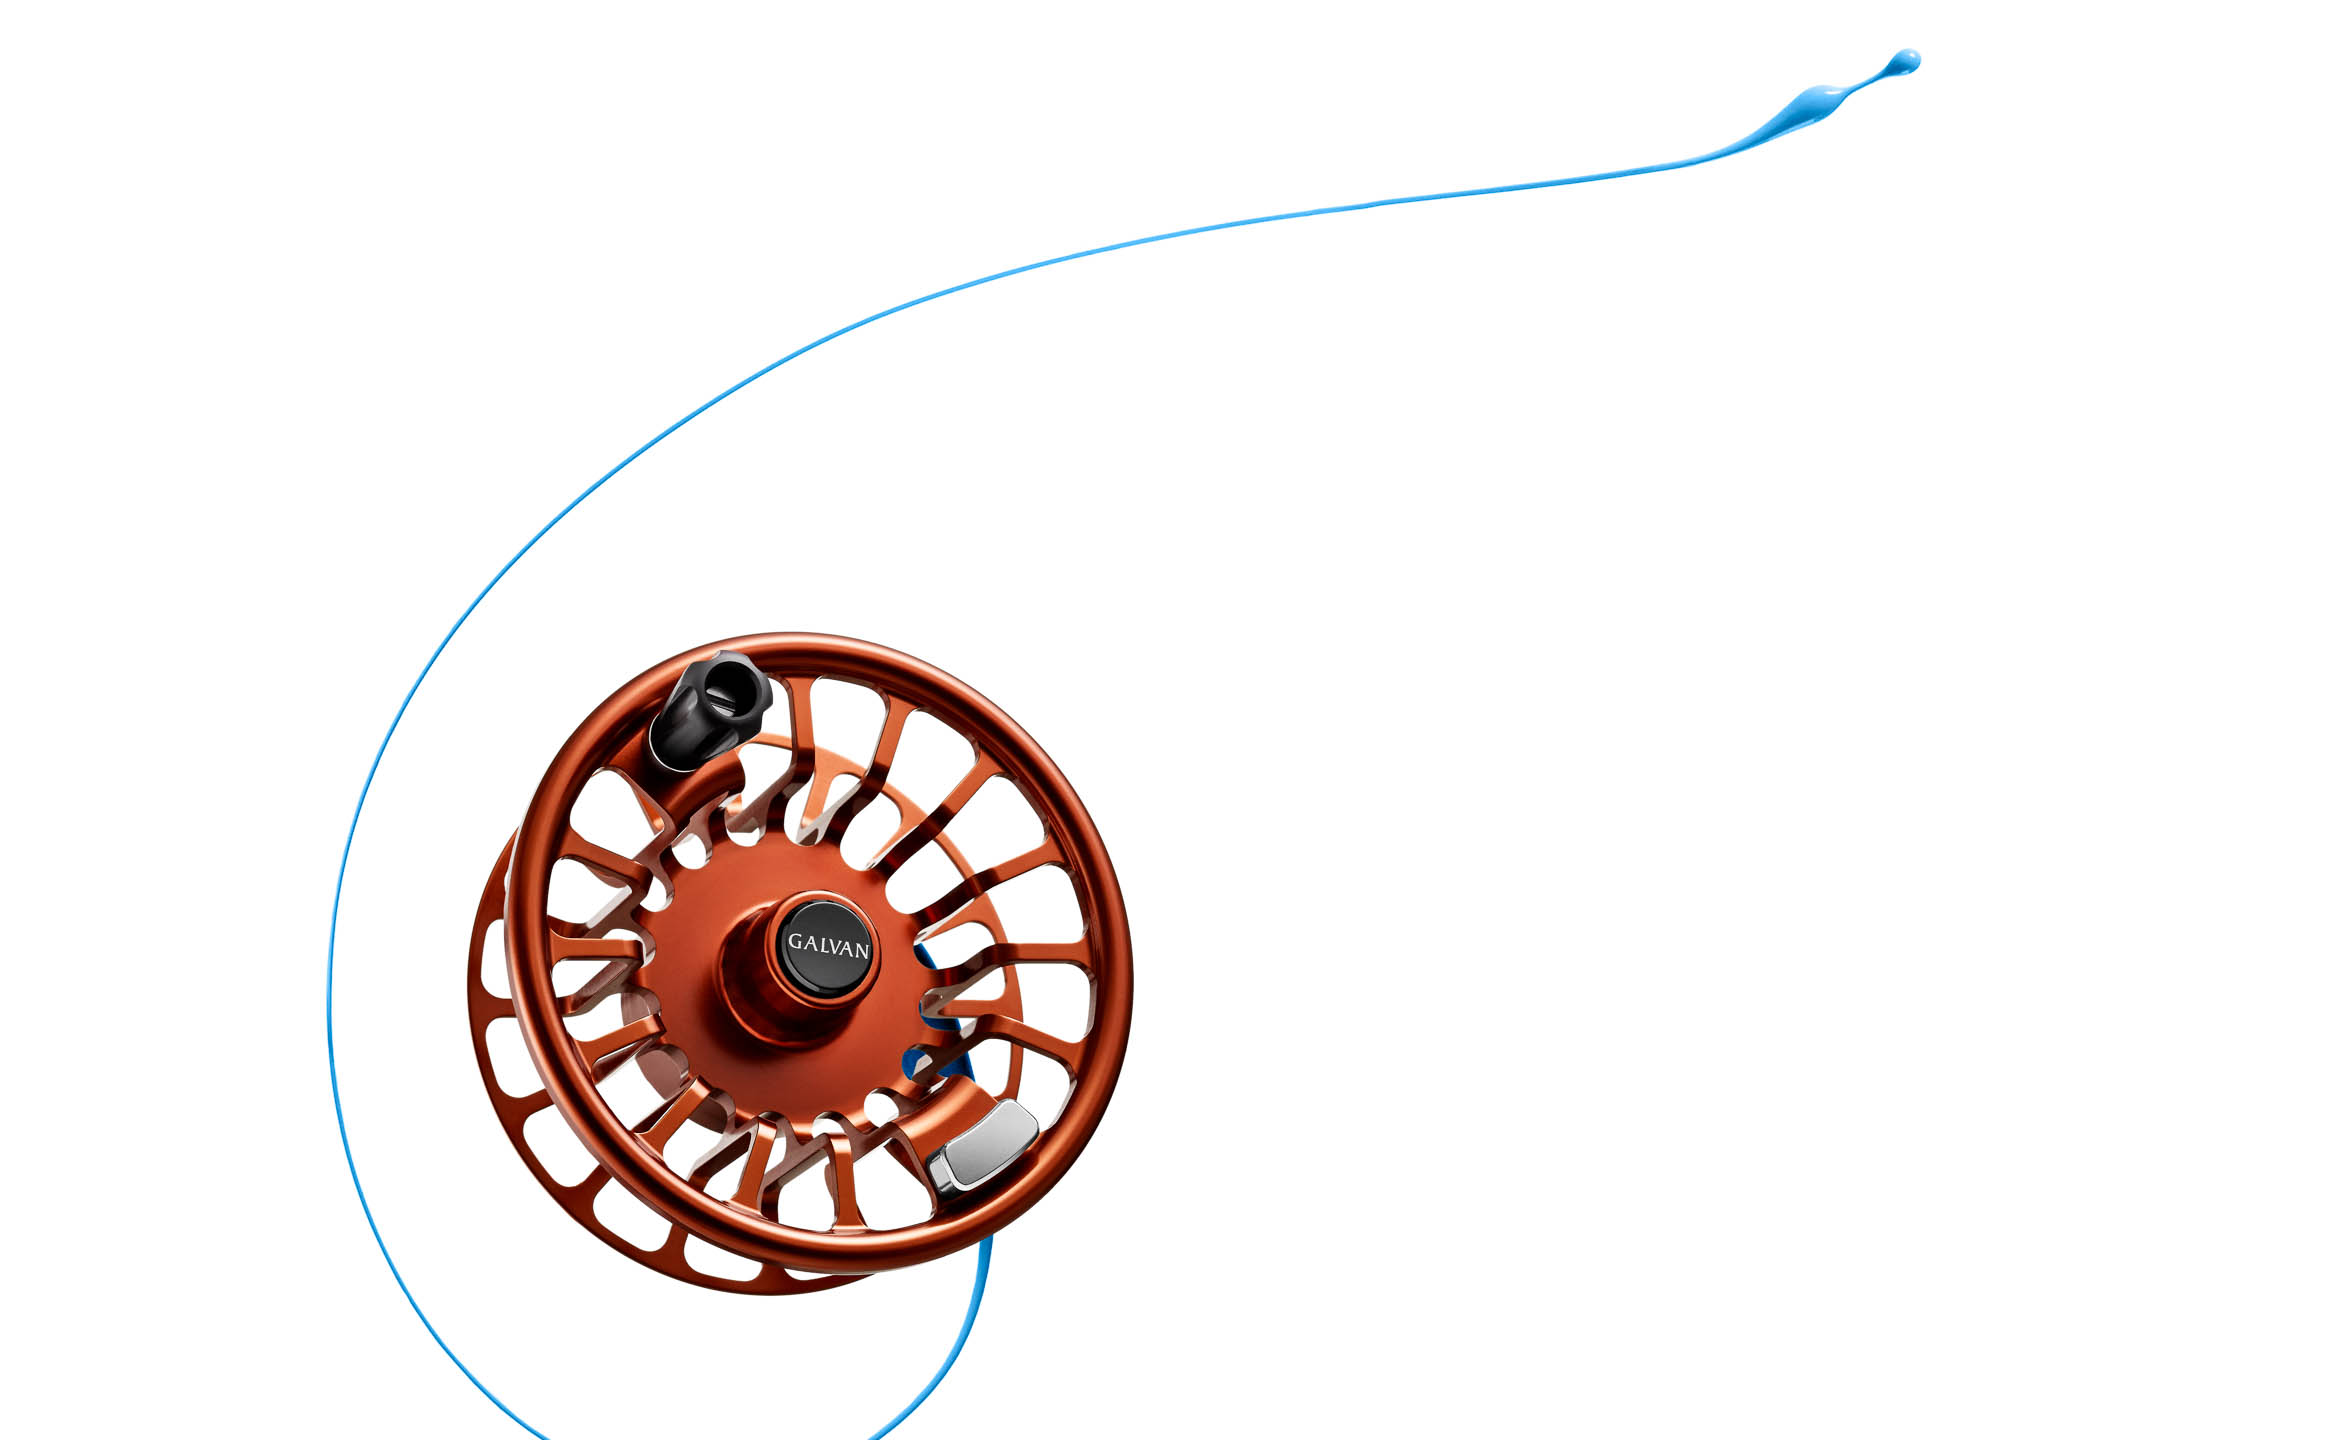 Galvan fly fishing reel